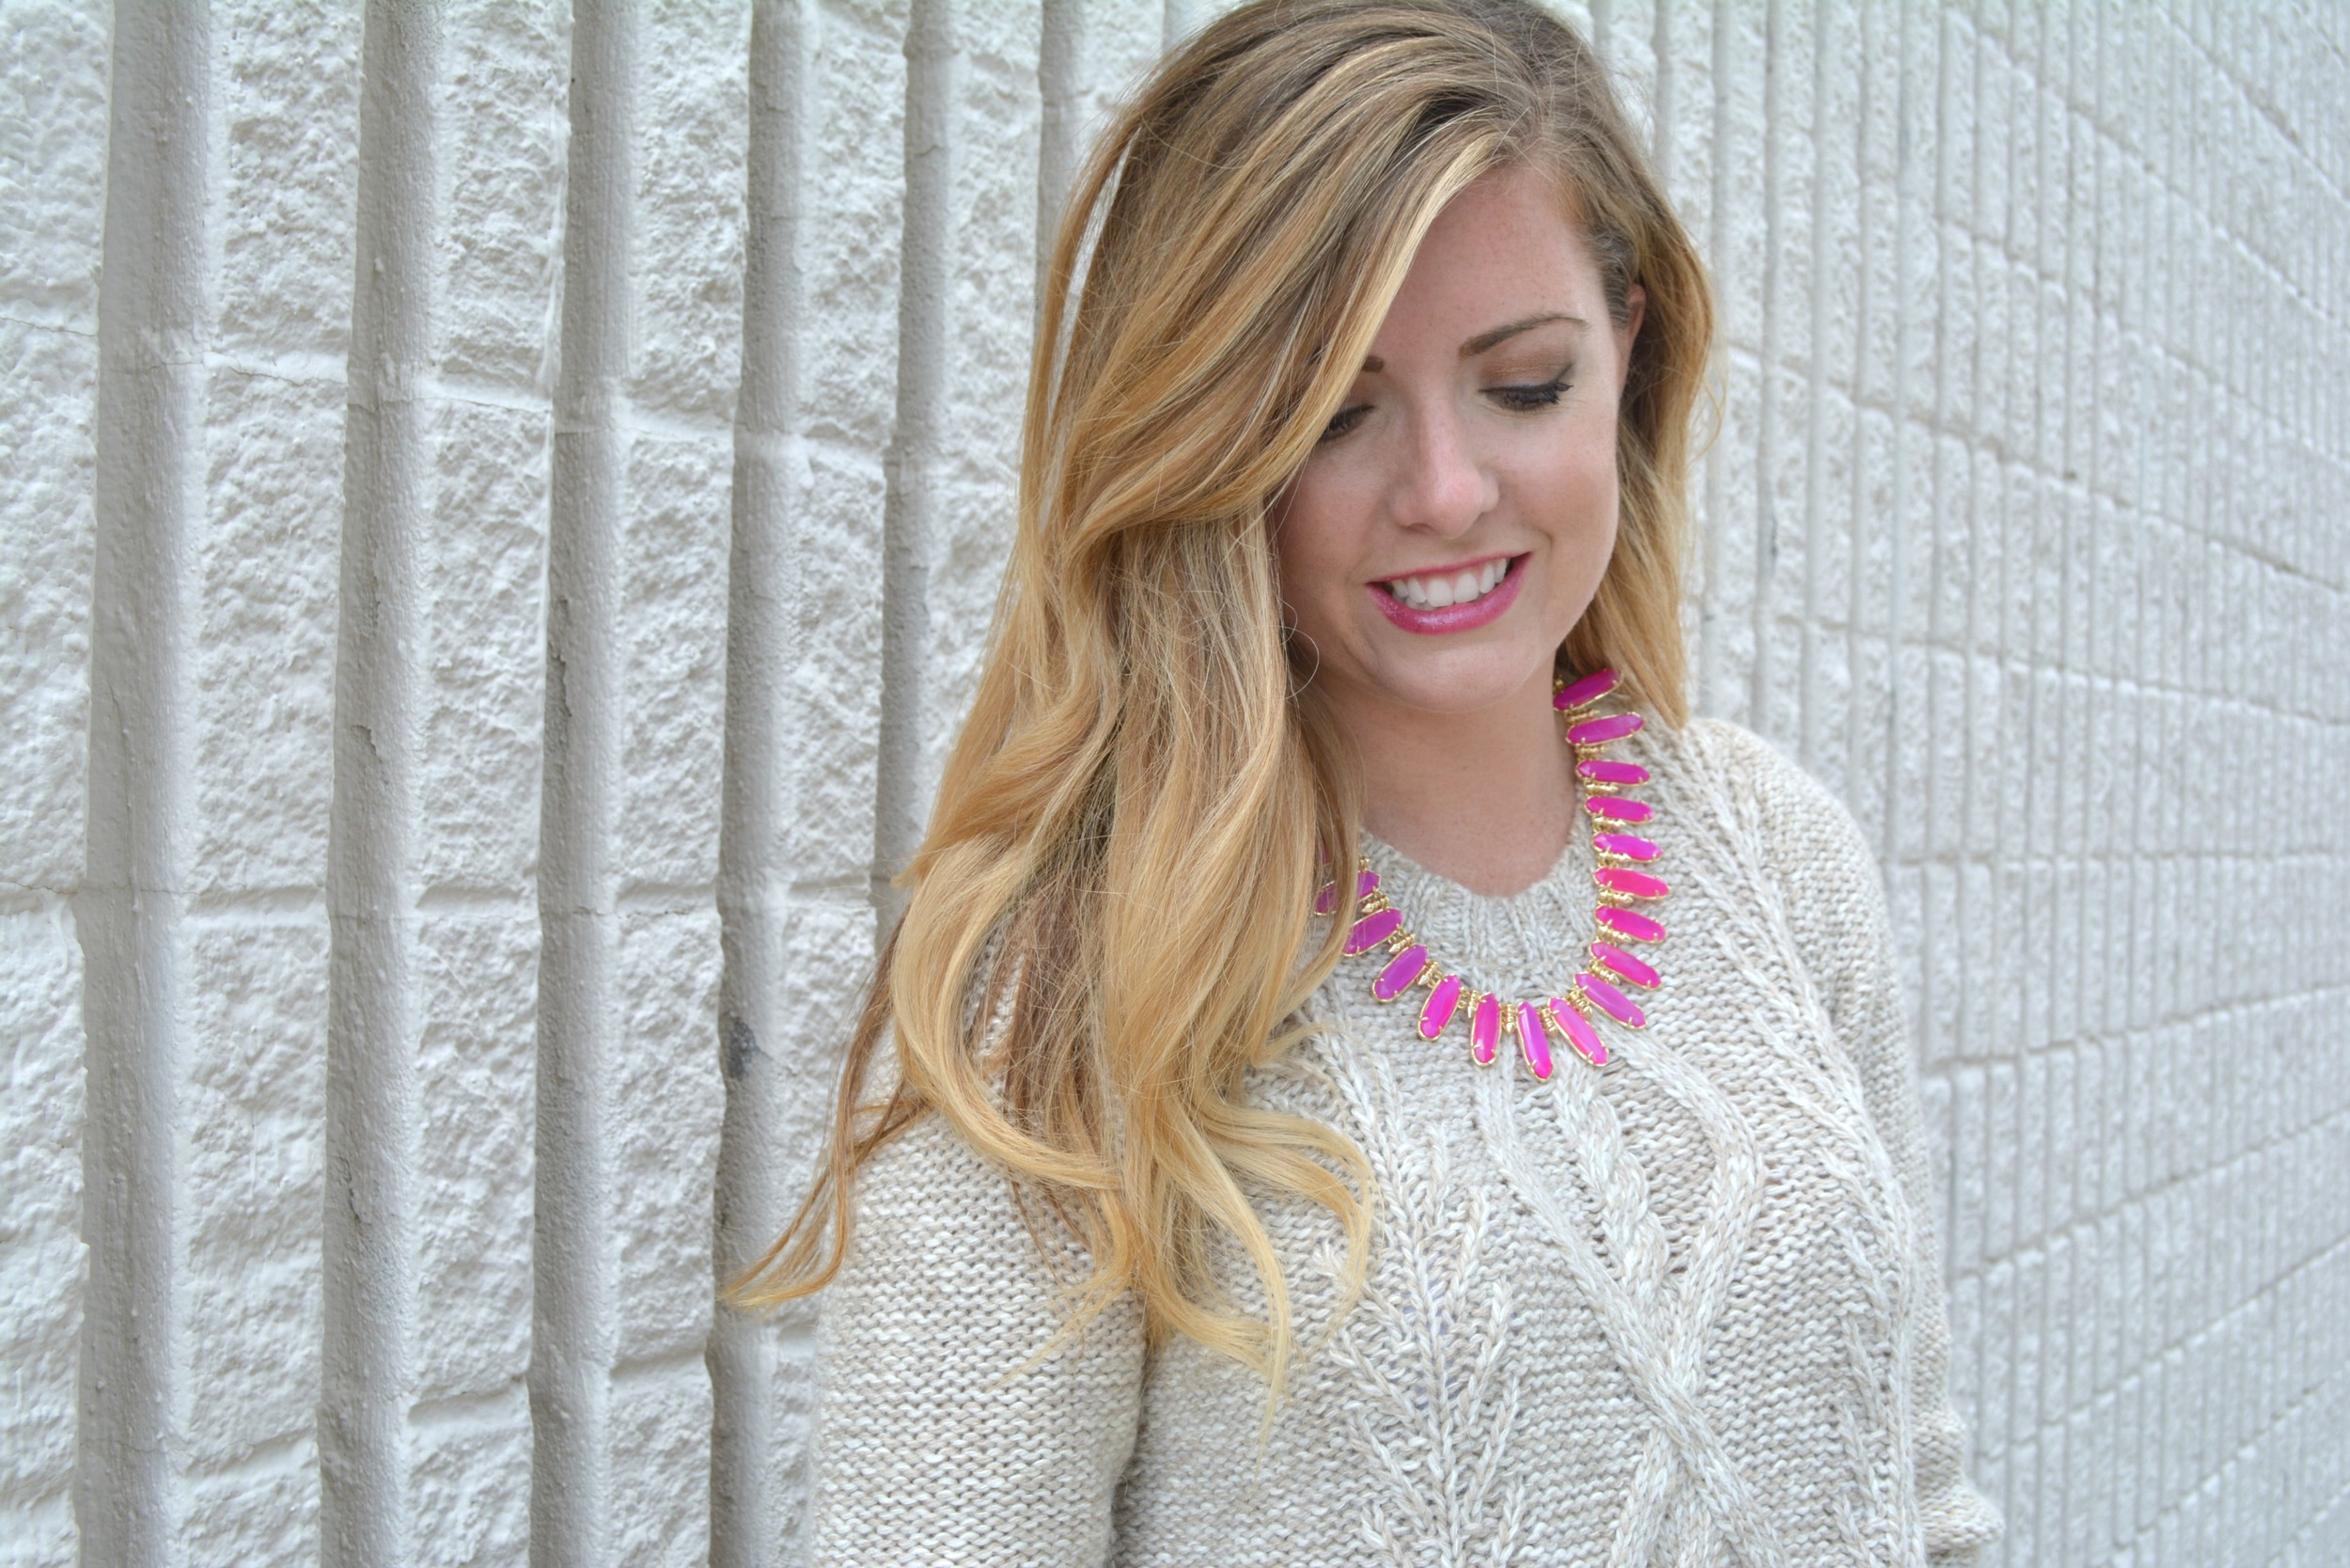 Kendra Scott Gabriella statement necklace styled for fall on Sophisticaited.com